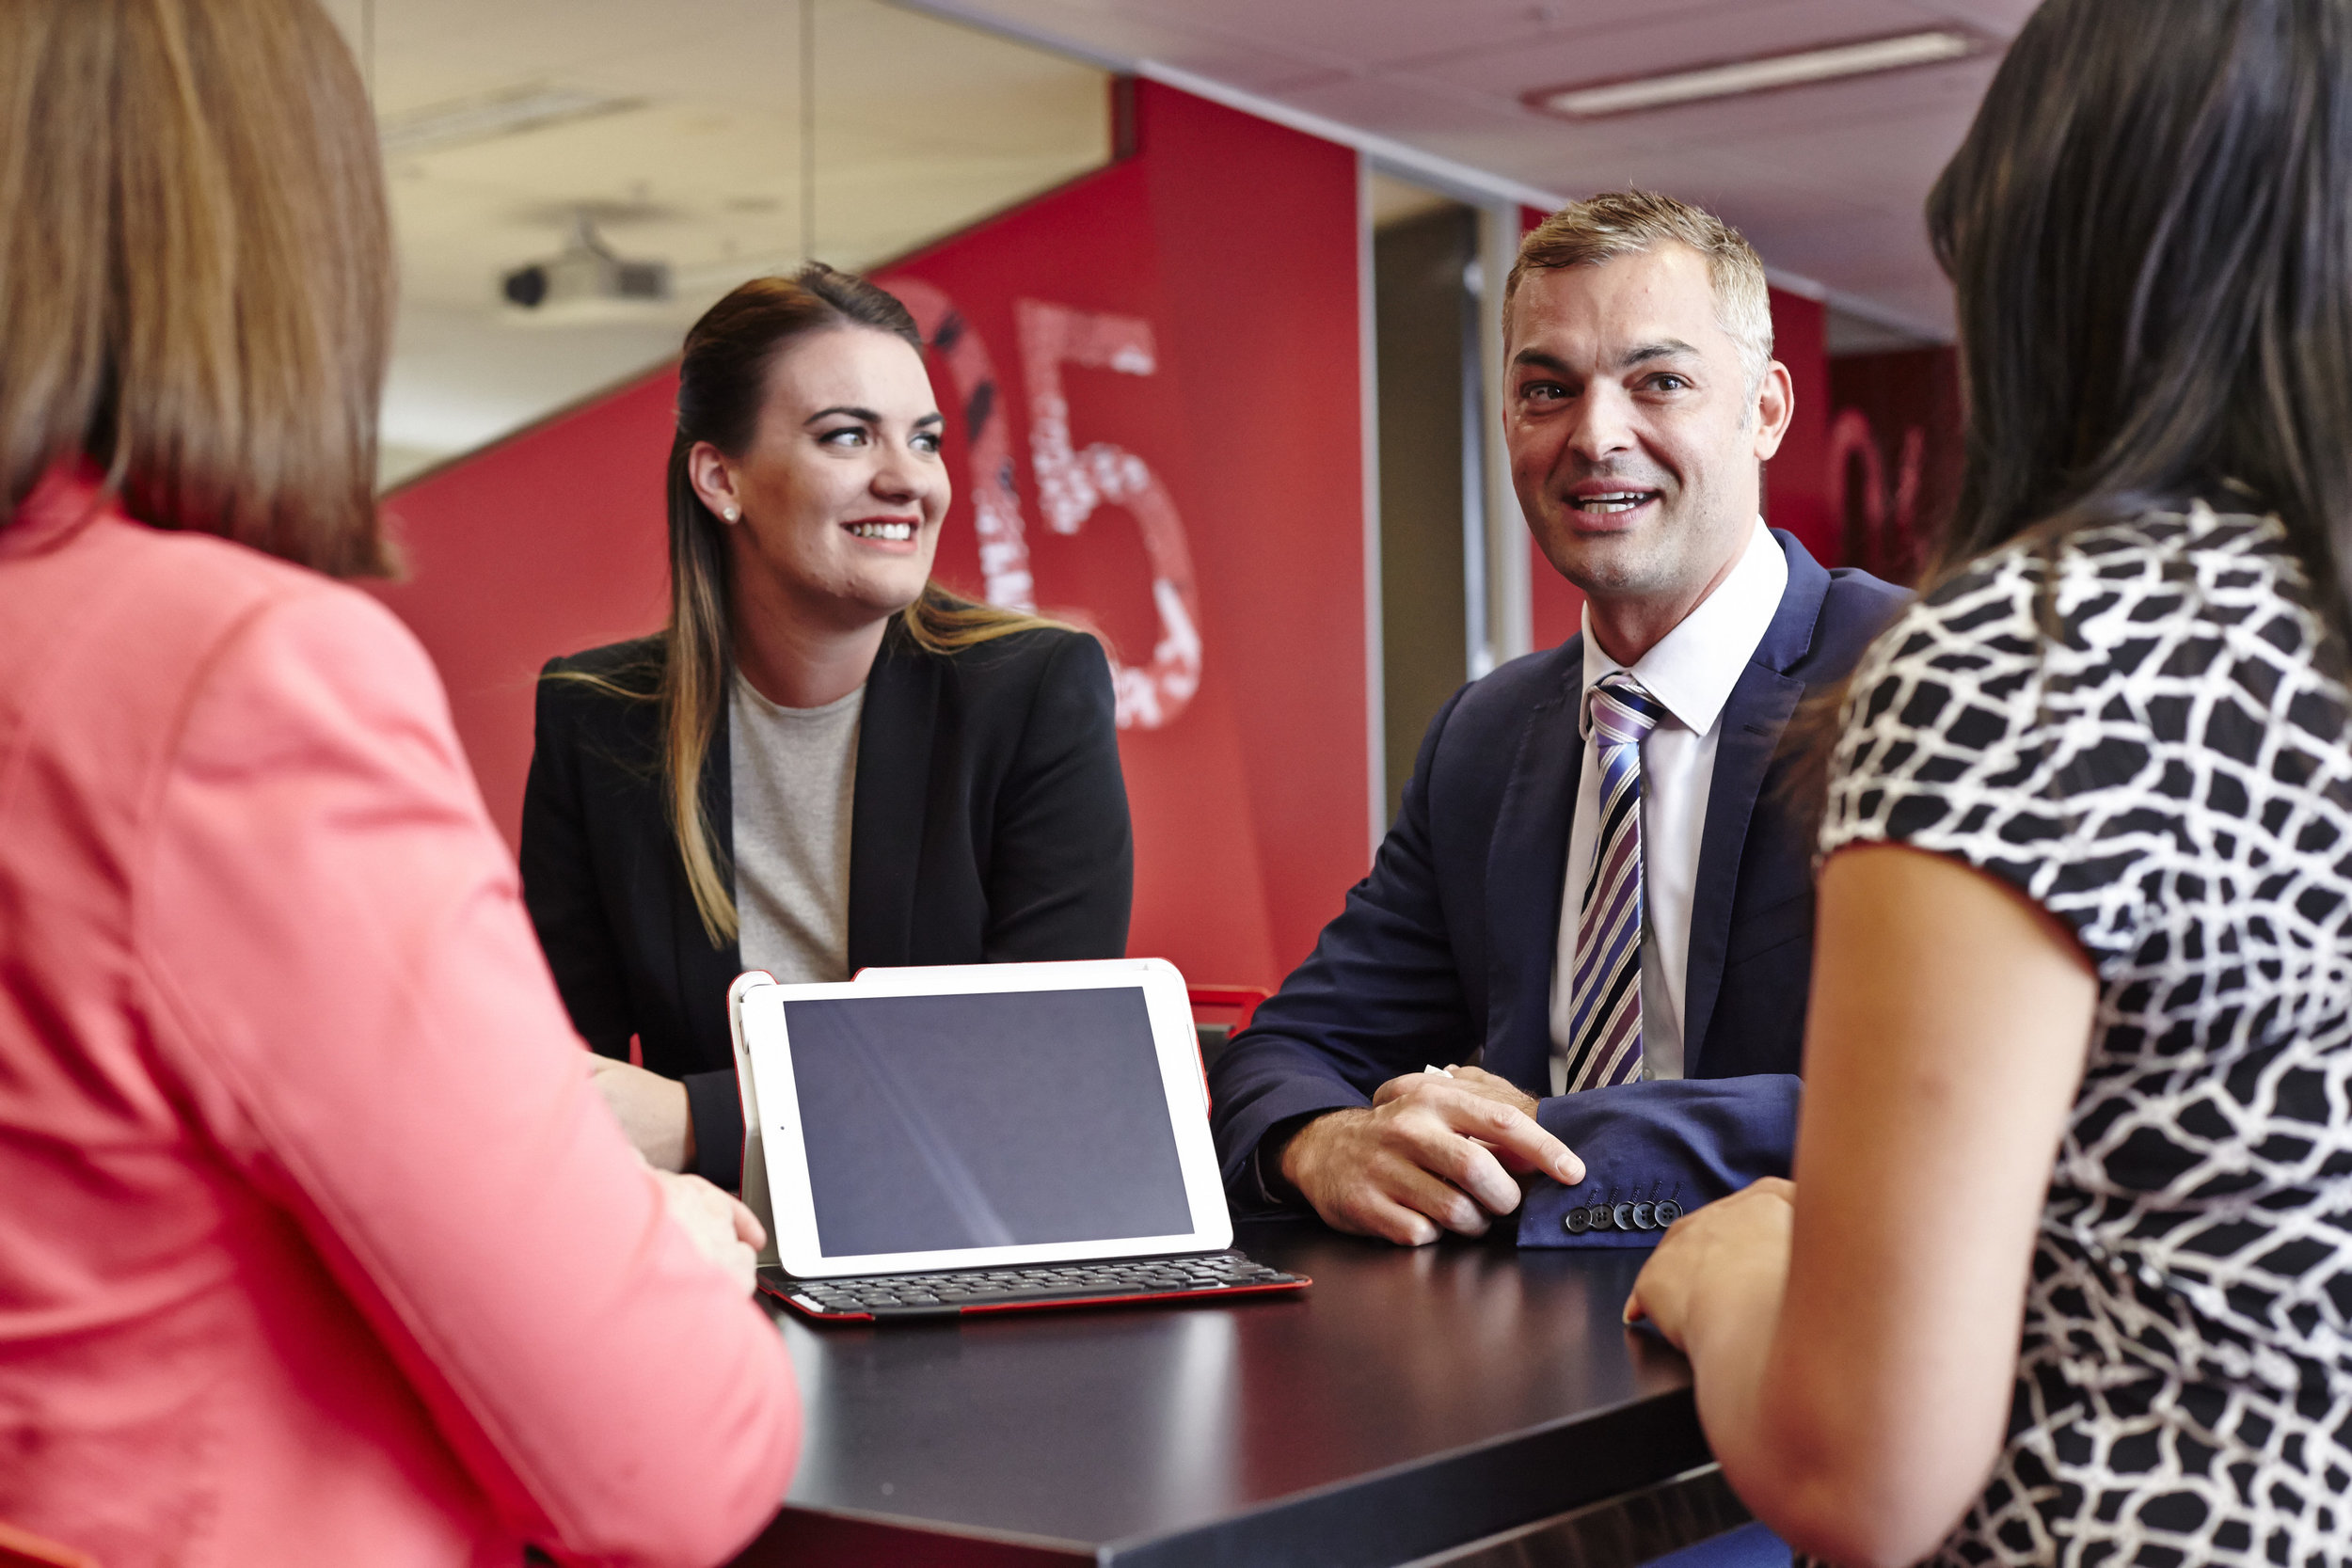 WESTPAC - INTRANET PORTRAITS